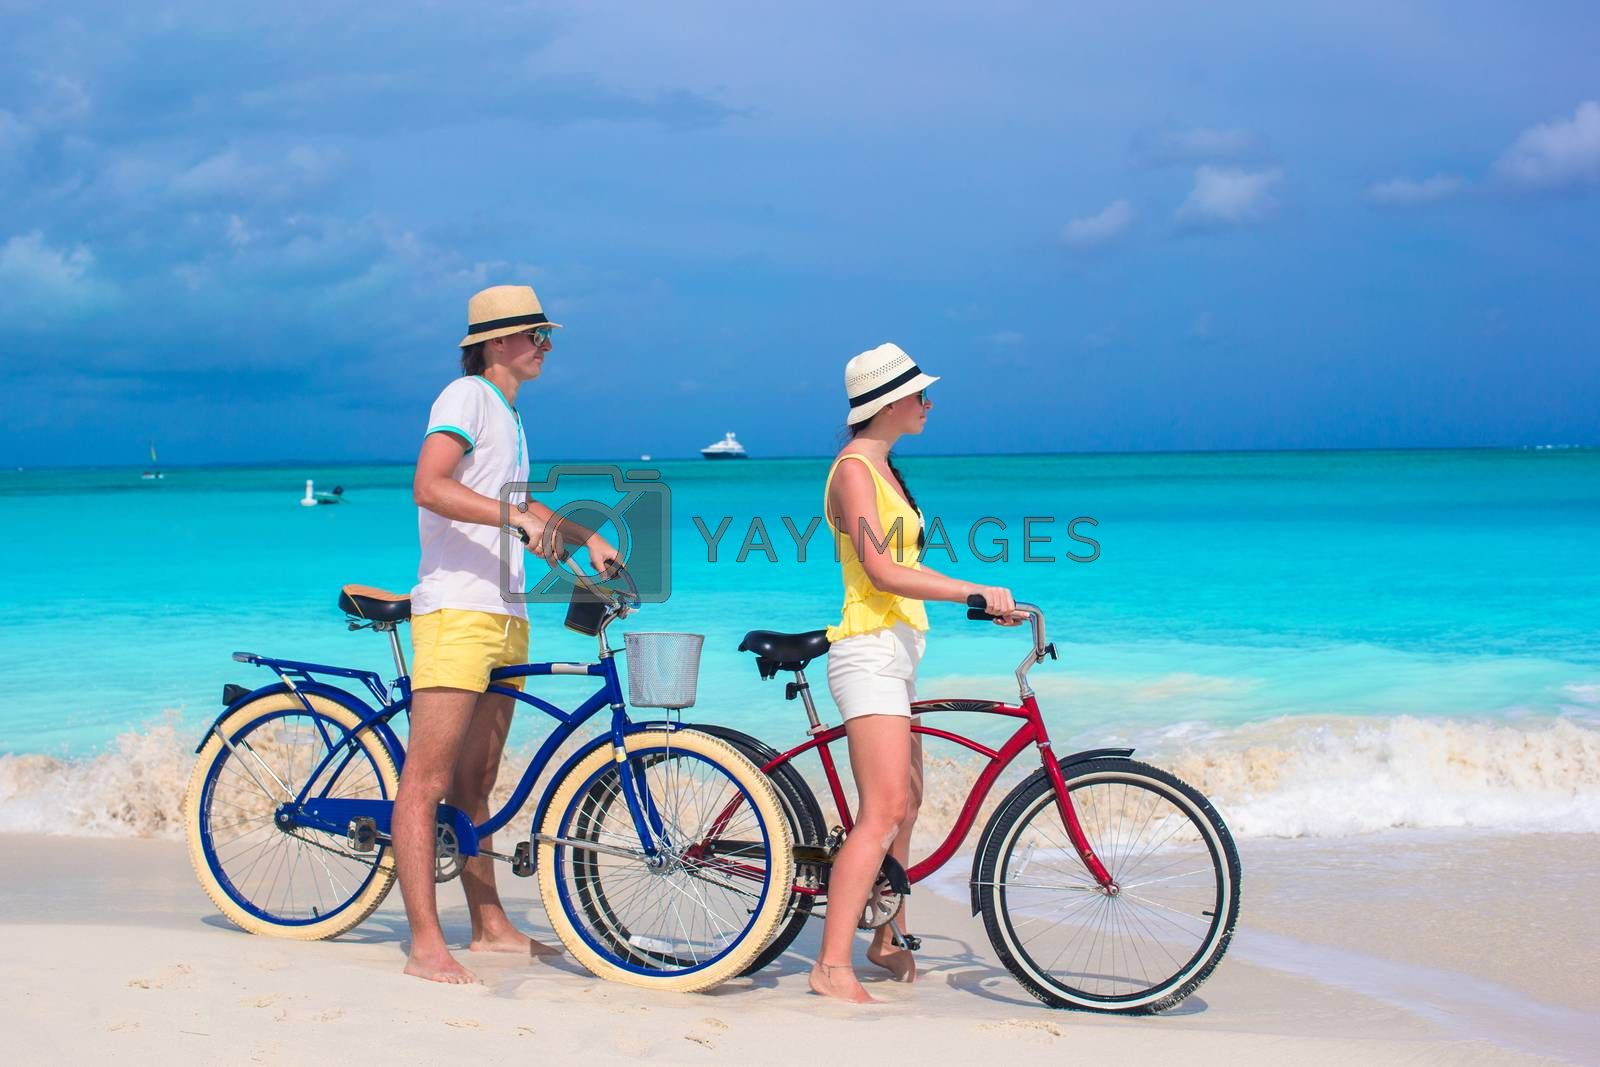 Royalty free image of Young happy couple riding bikes on white tropical beach by travnikovstudio